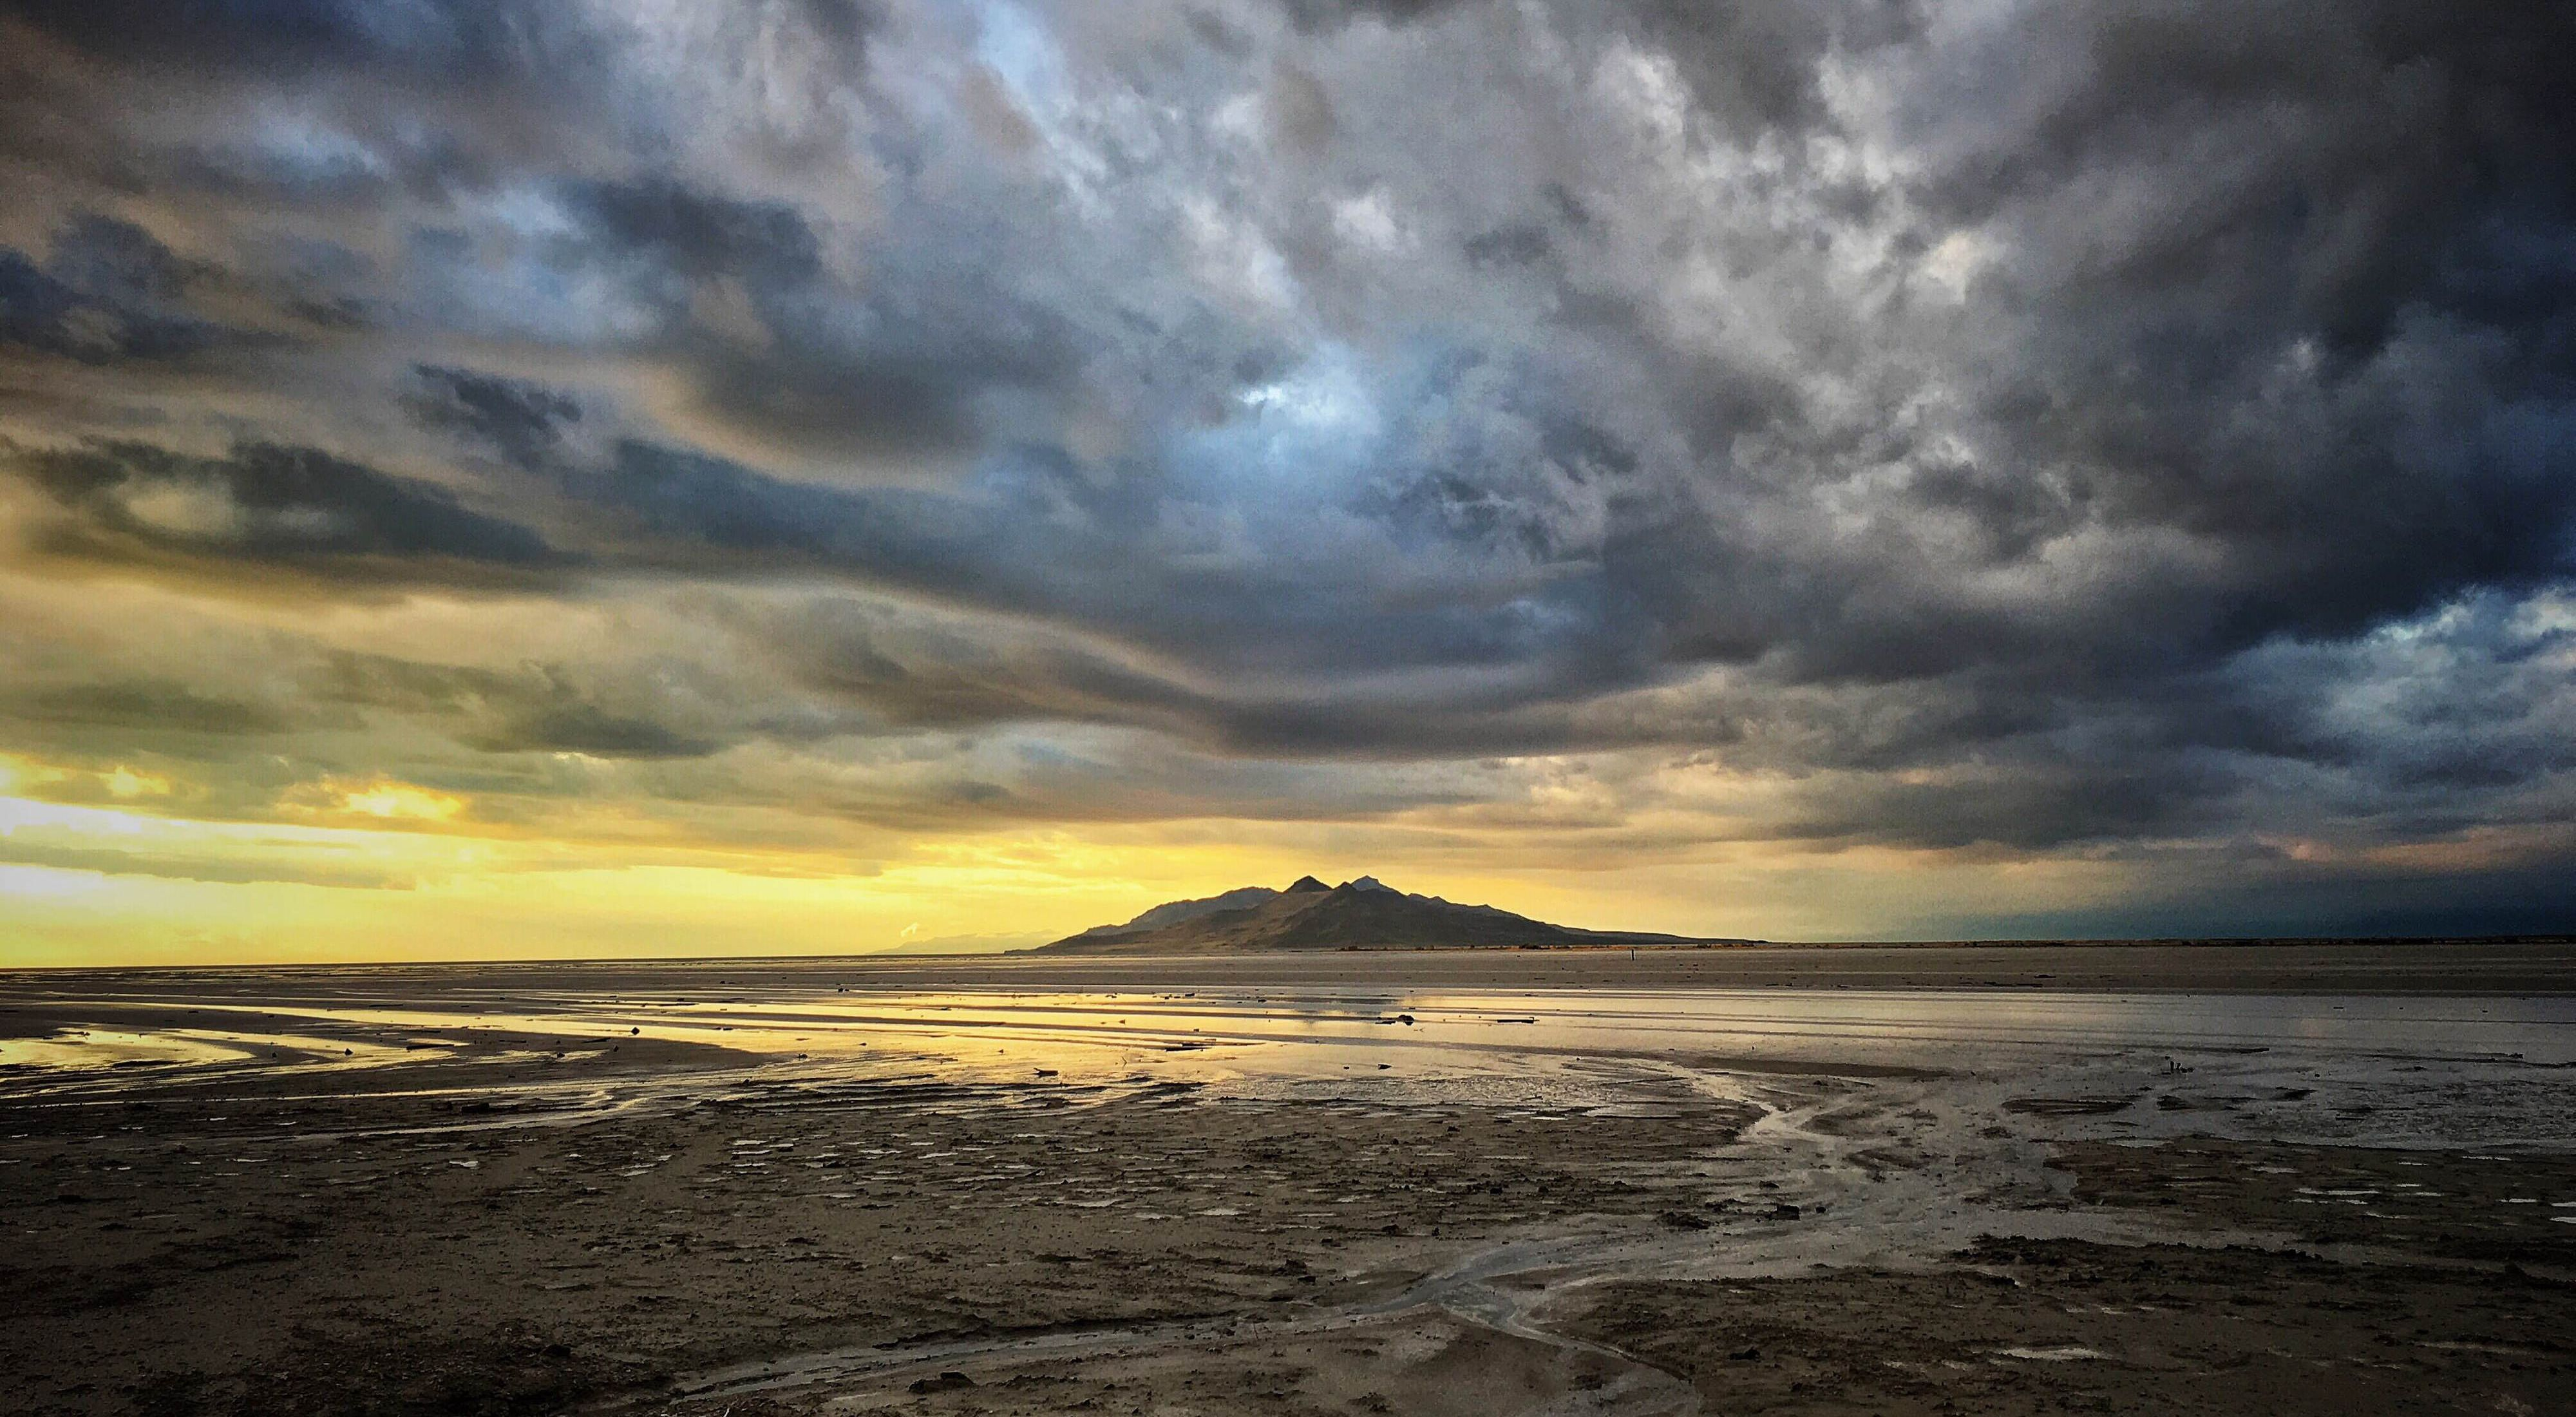 Shallow water in the great salt lake under dramatic cloudy skies with a hill in the distance.